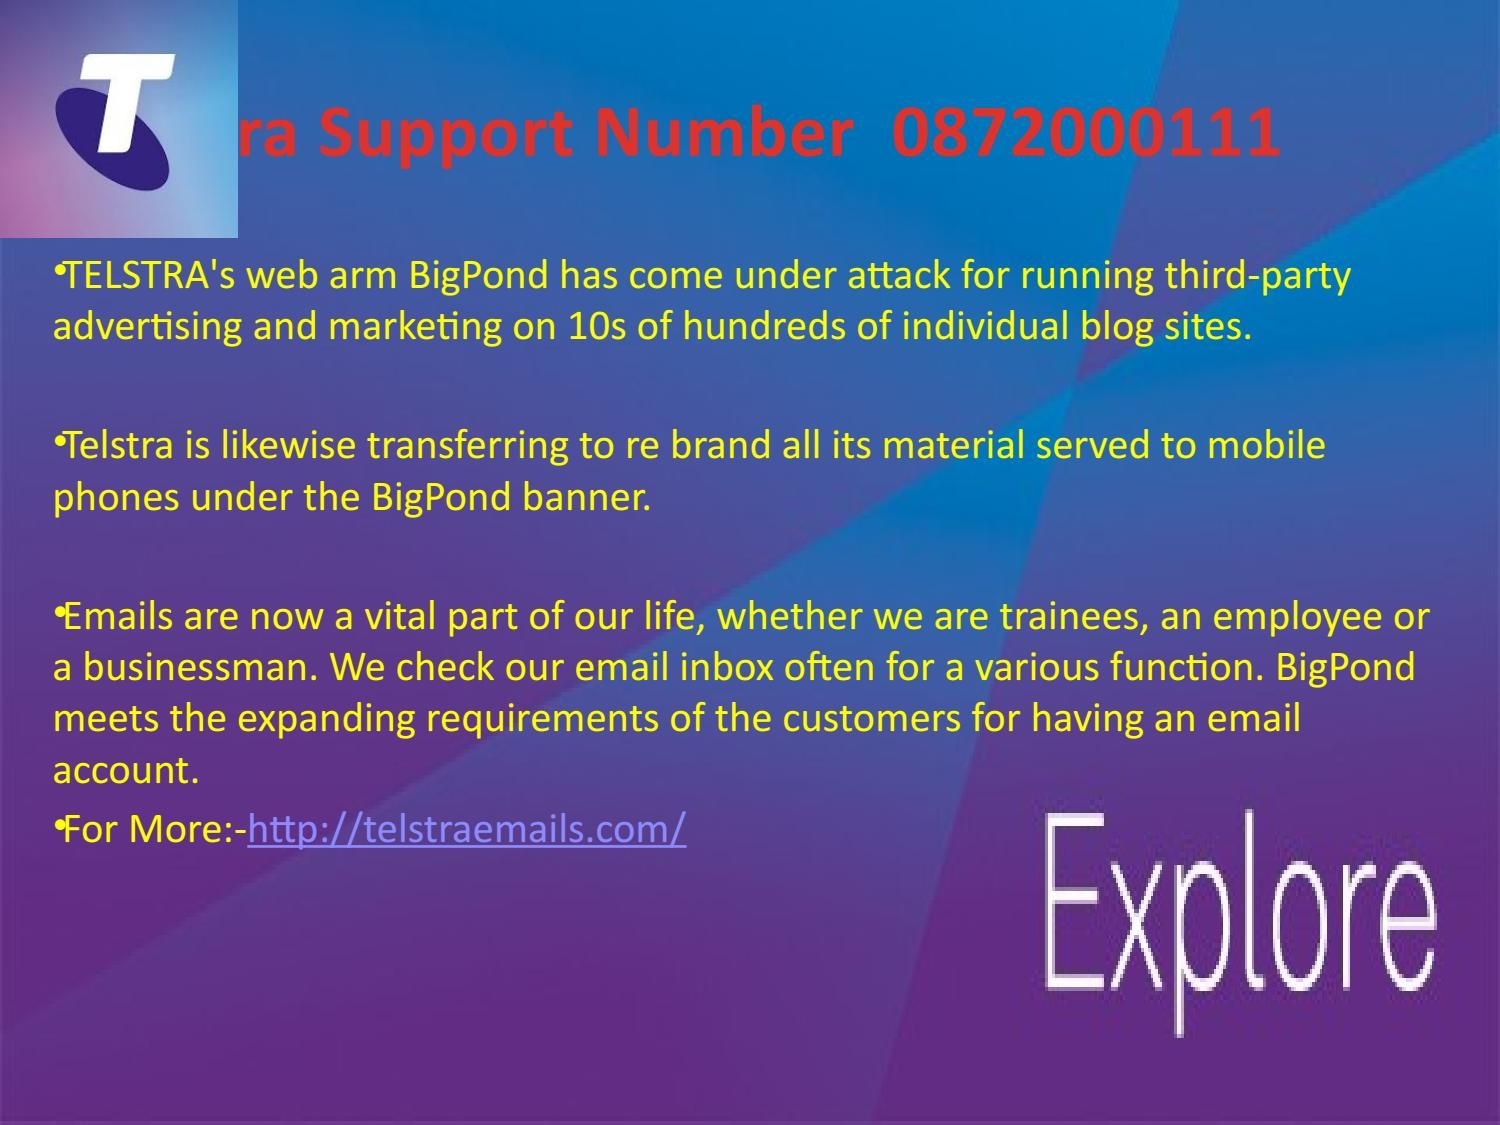 Telstra Support Number 0872000111 Supportive, Blog sites